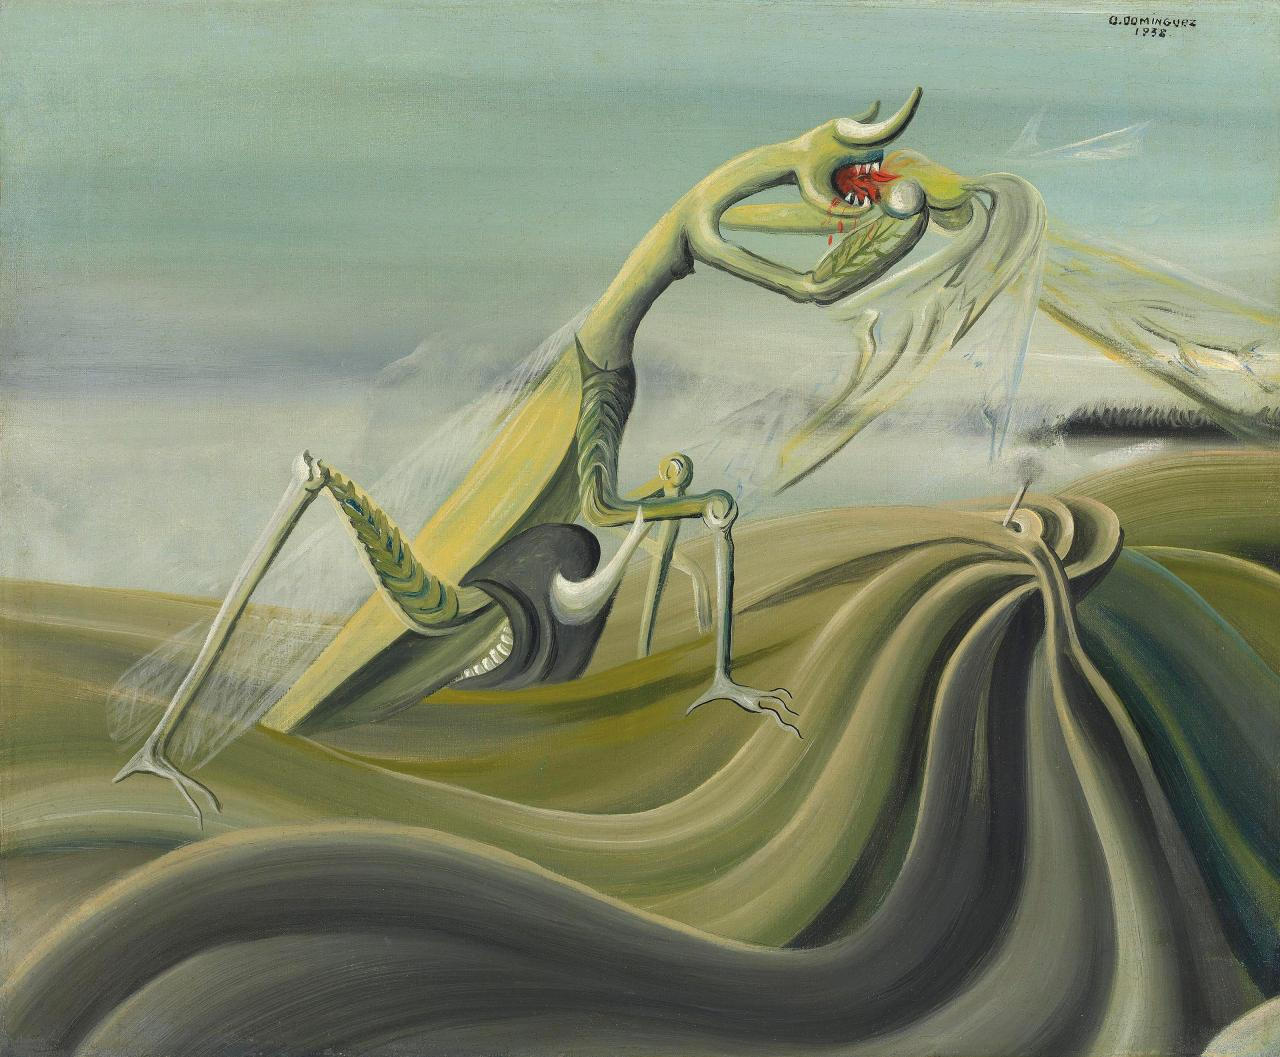 No doubt influenced by the centrality of the praying mantis in surrealist art and writing and its embodiment of freudian psychoanalytics the insect also